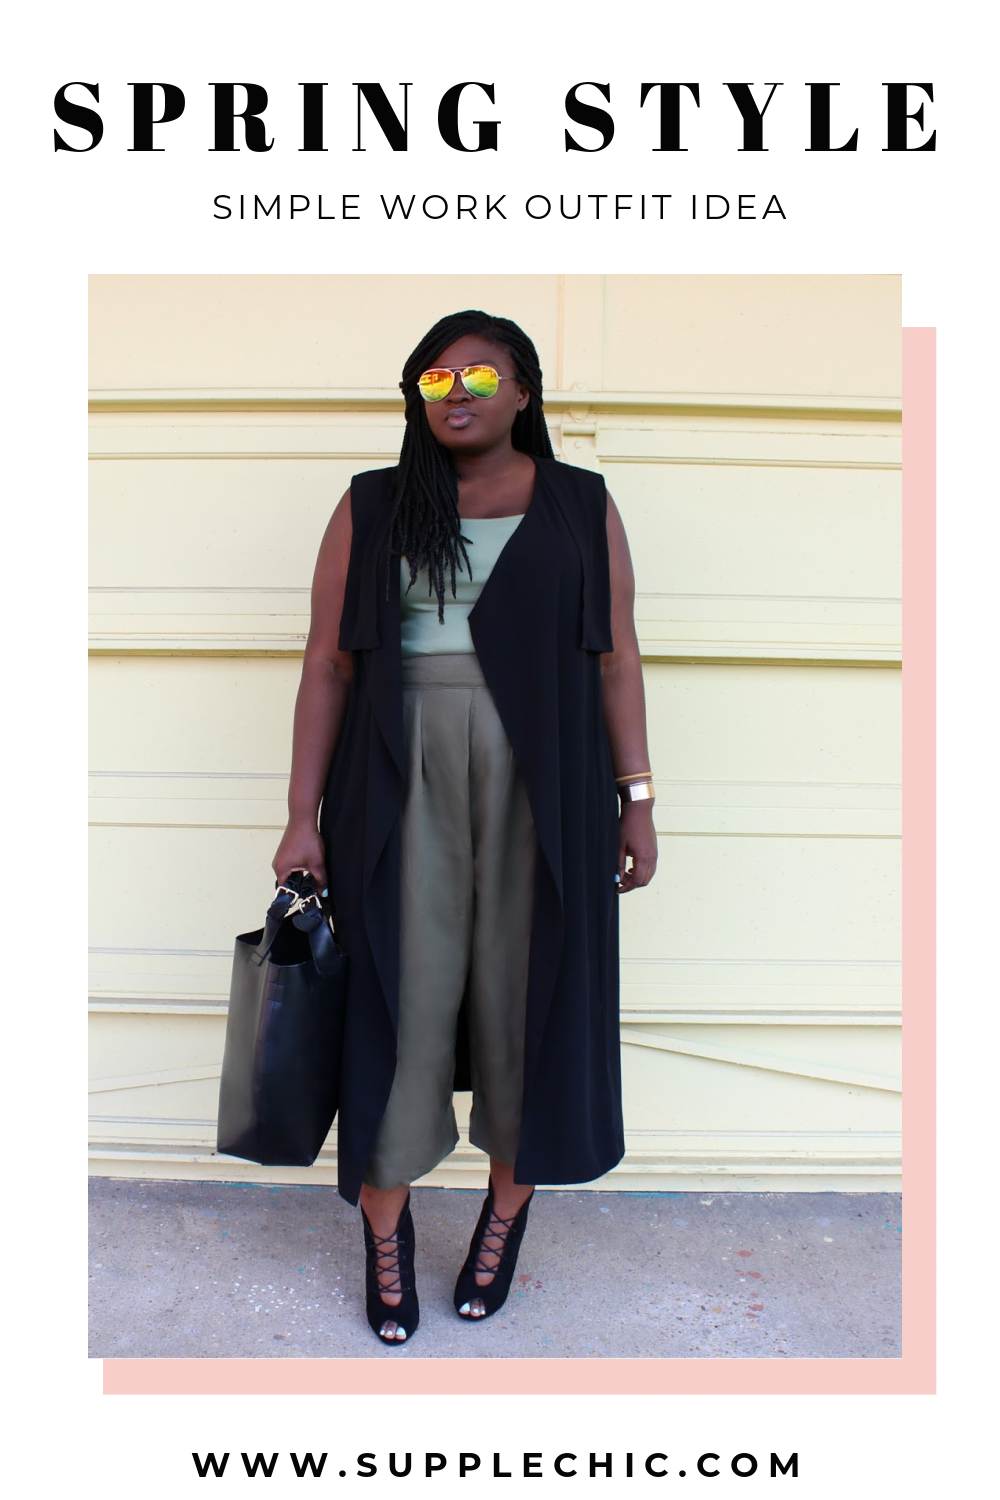 spring work outfit idea from supplechic a fashion and lifestyle blog based out of Baltimore